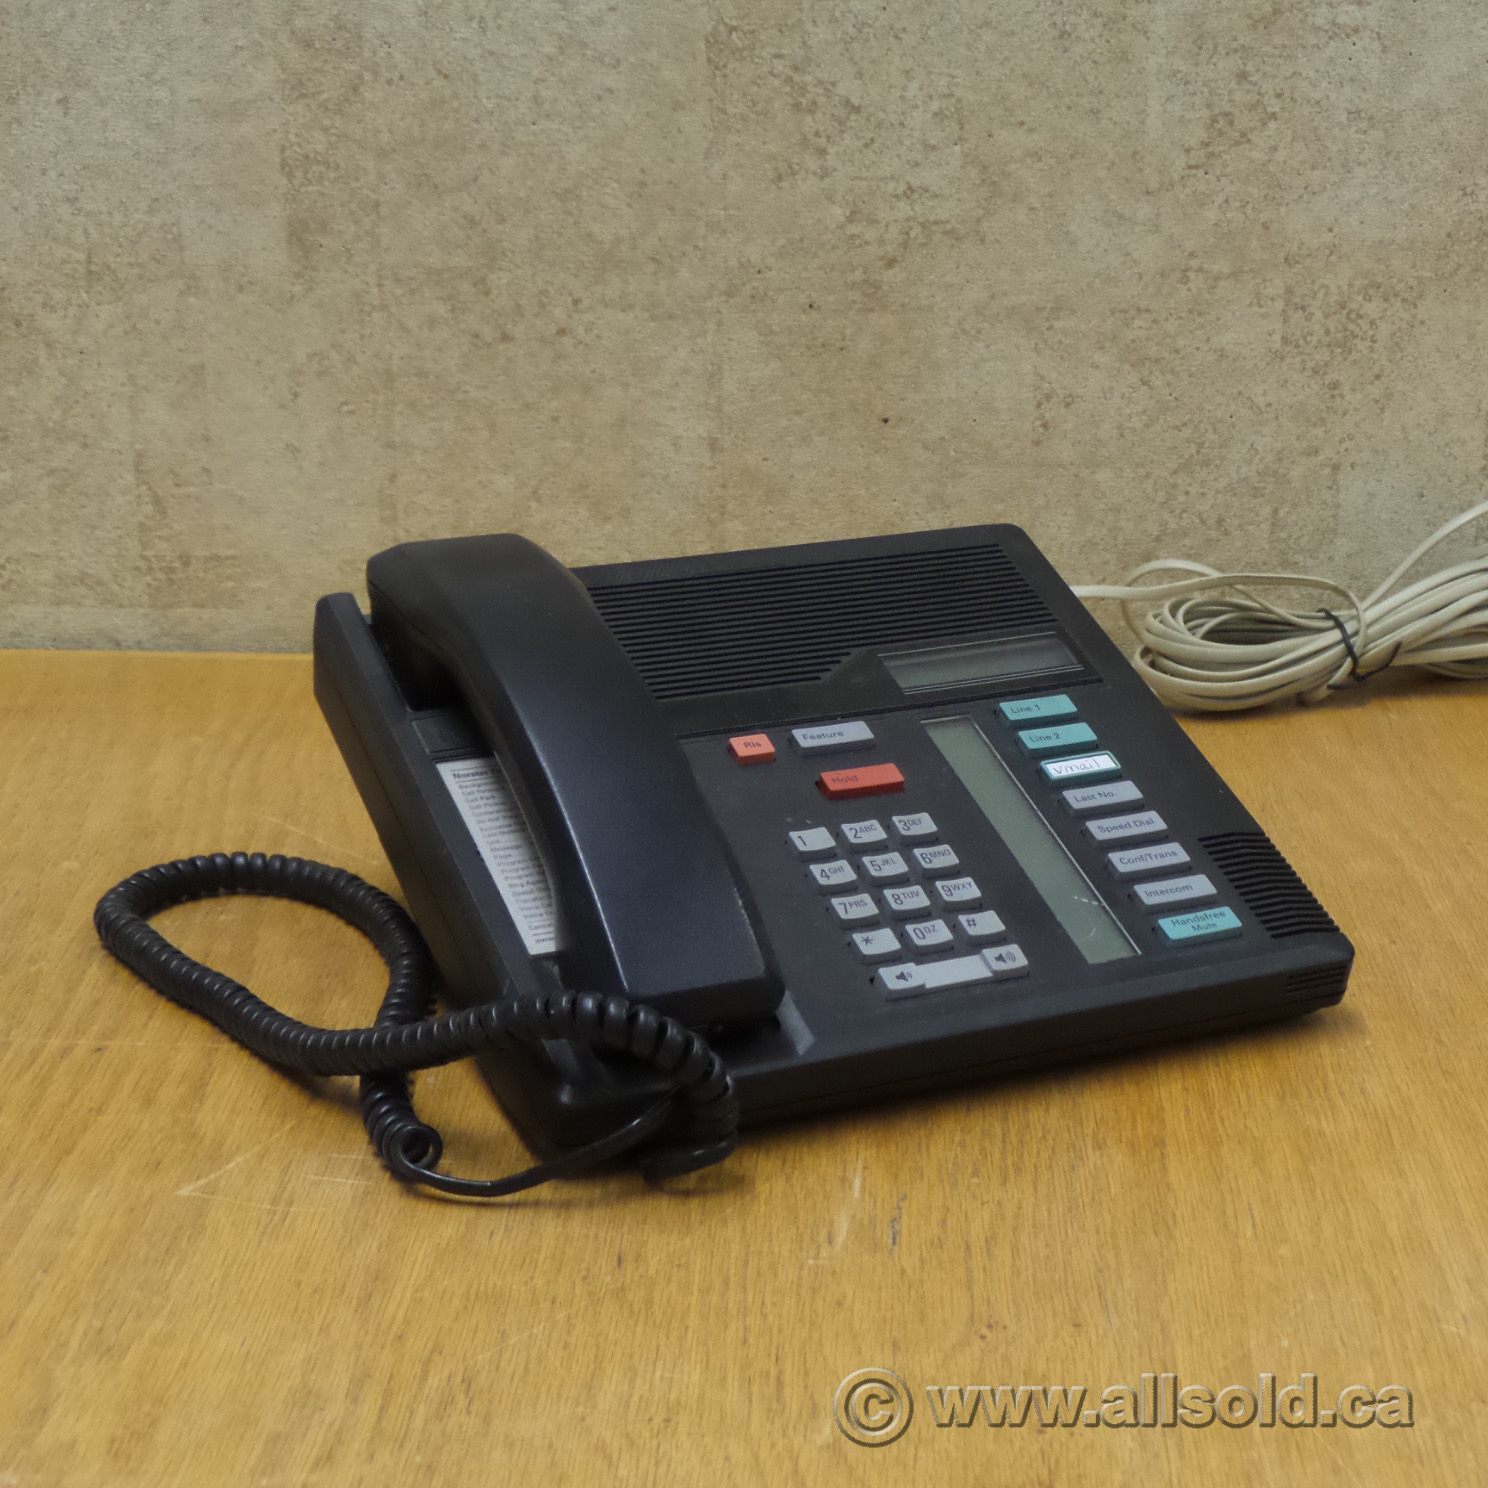 norstar office chair parts small wooden meredian m7280 black multi line business phone